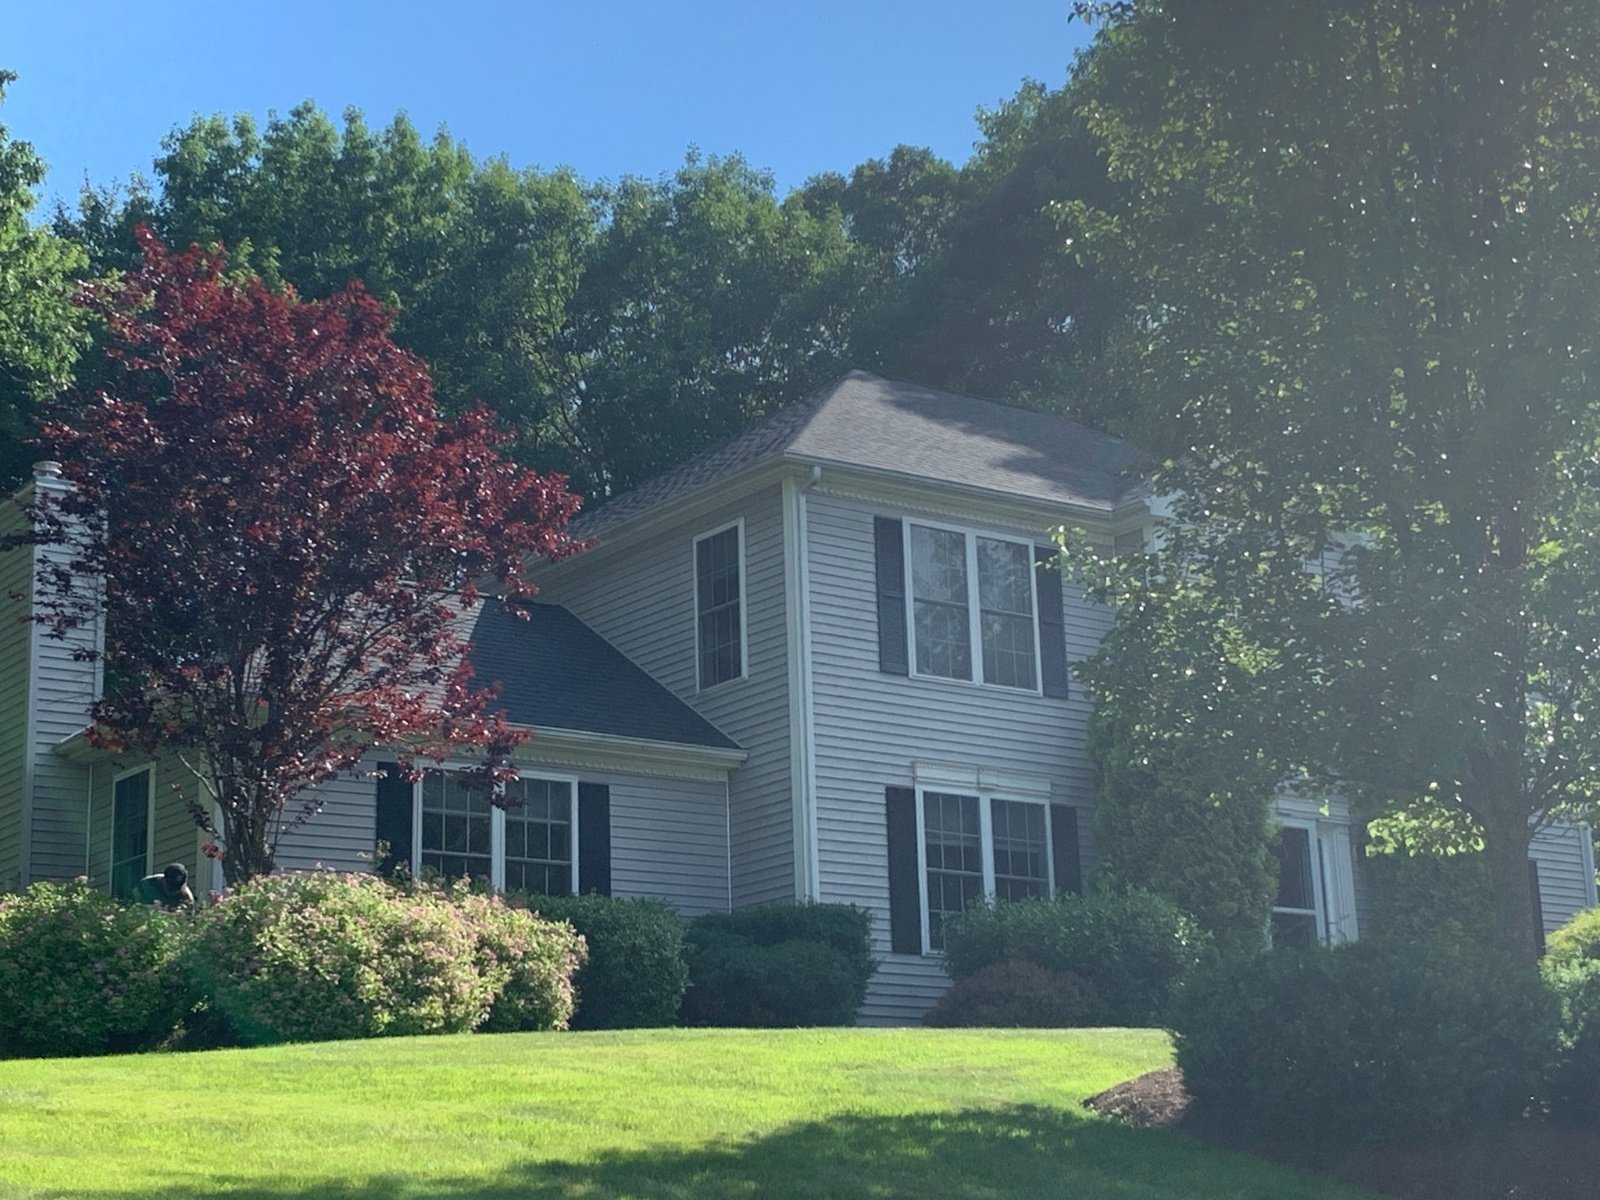 Residential Roofing in Hooksett NH by ASAP Roofing NH